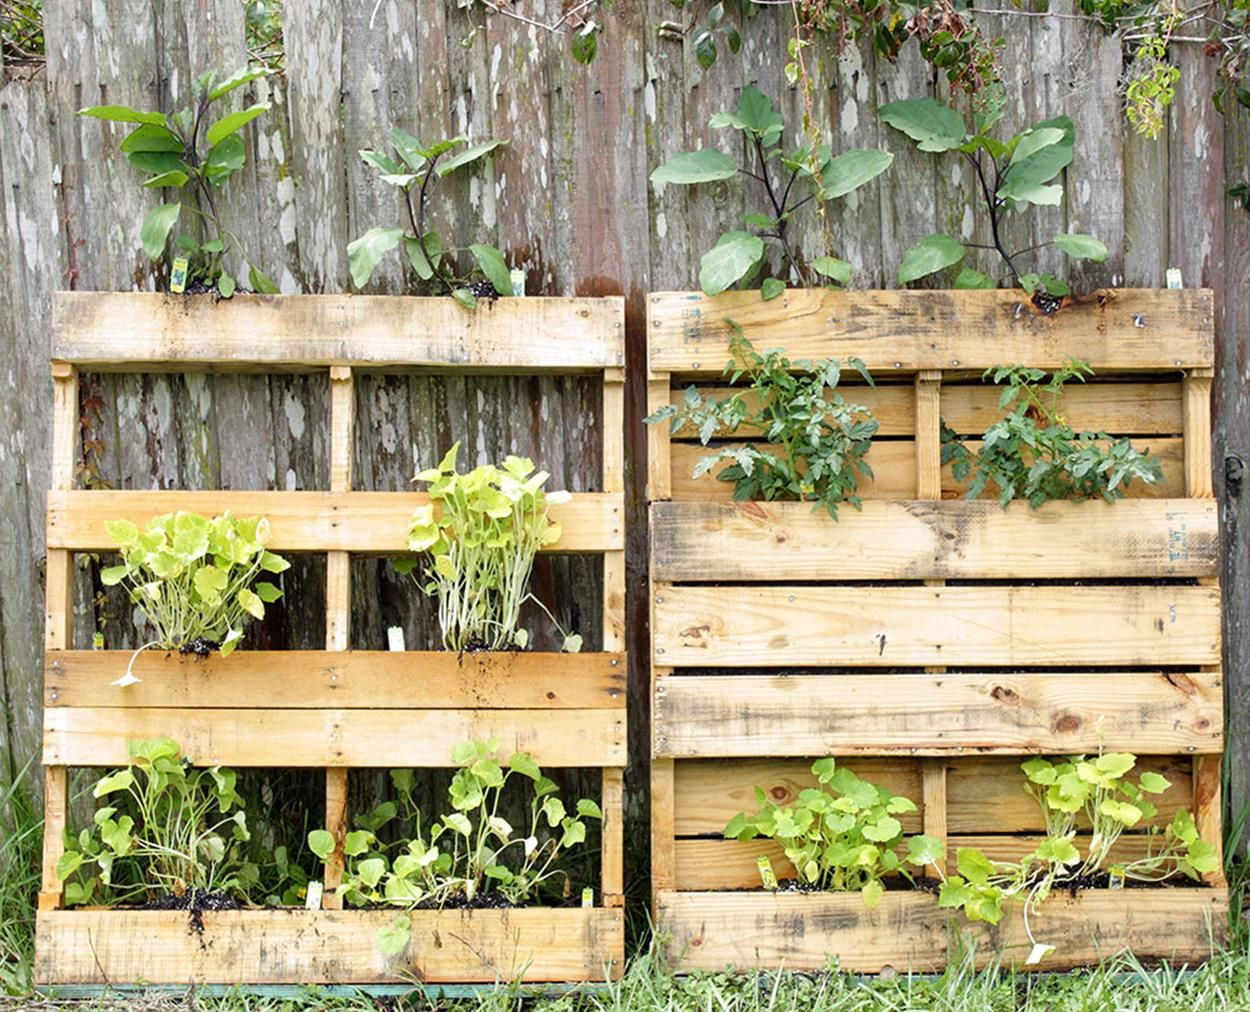 DIY Upcycled Wood Pallet Vertical Gardens in 2020 ...